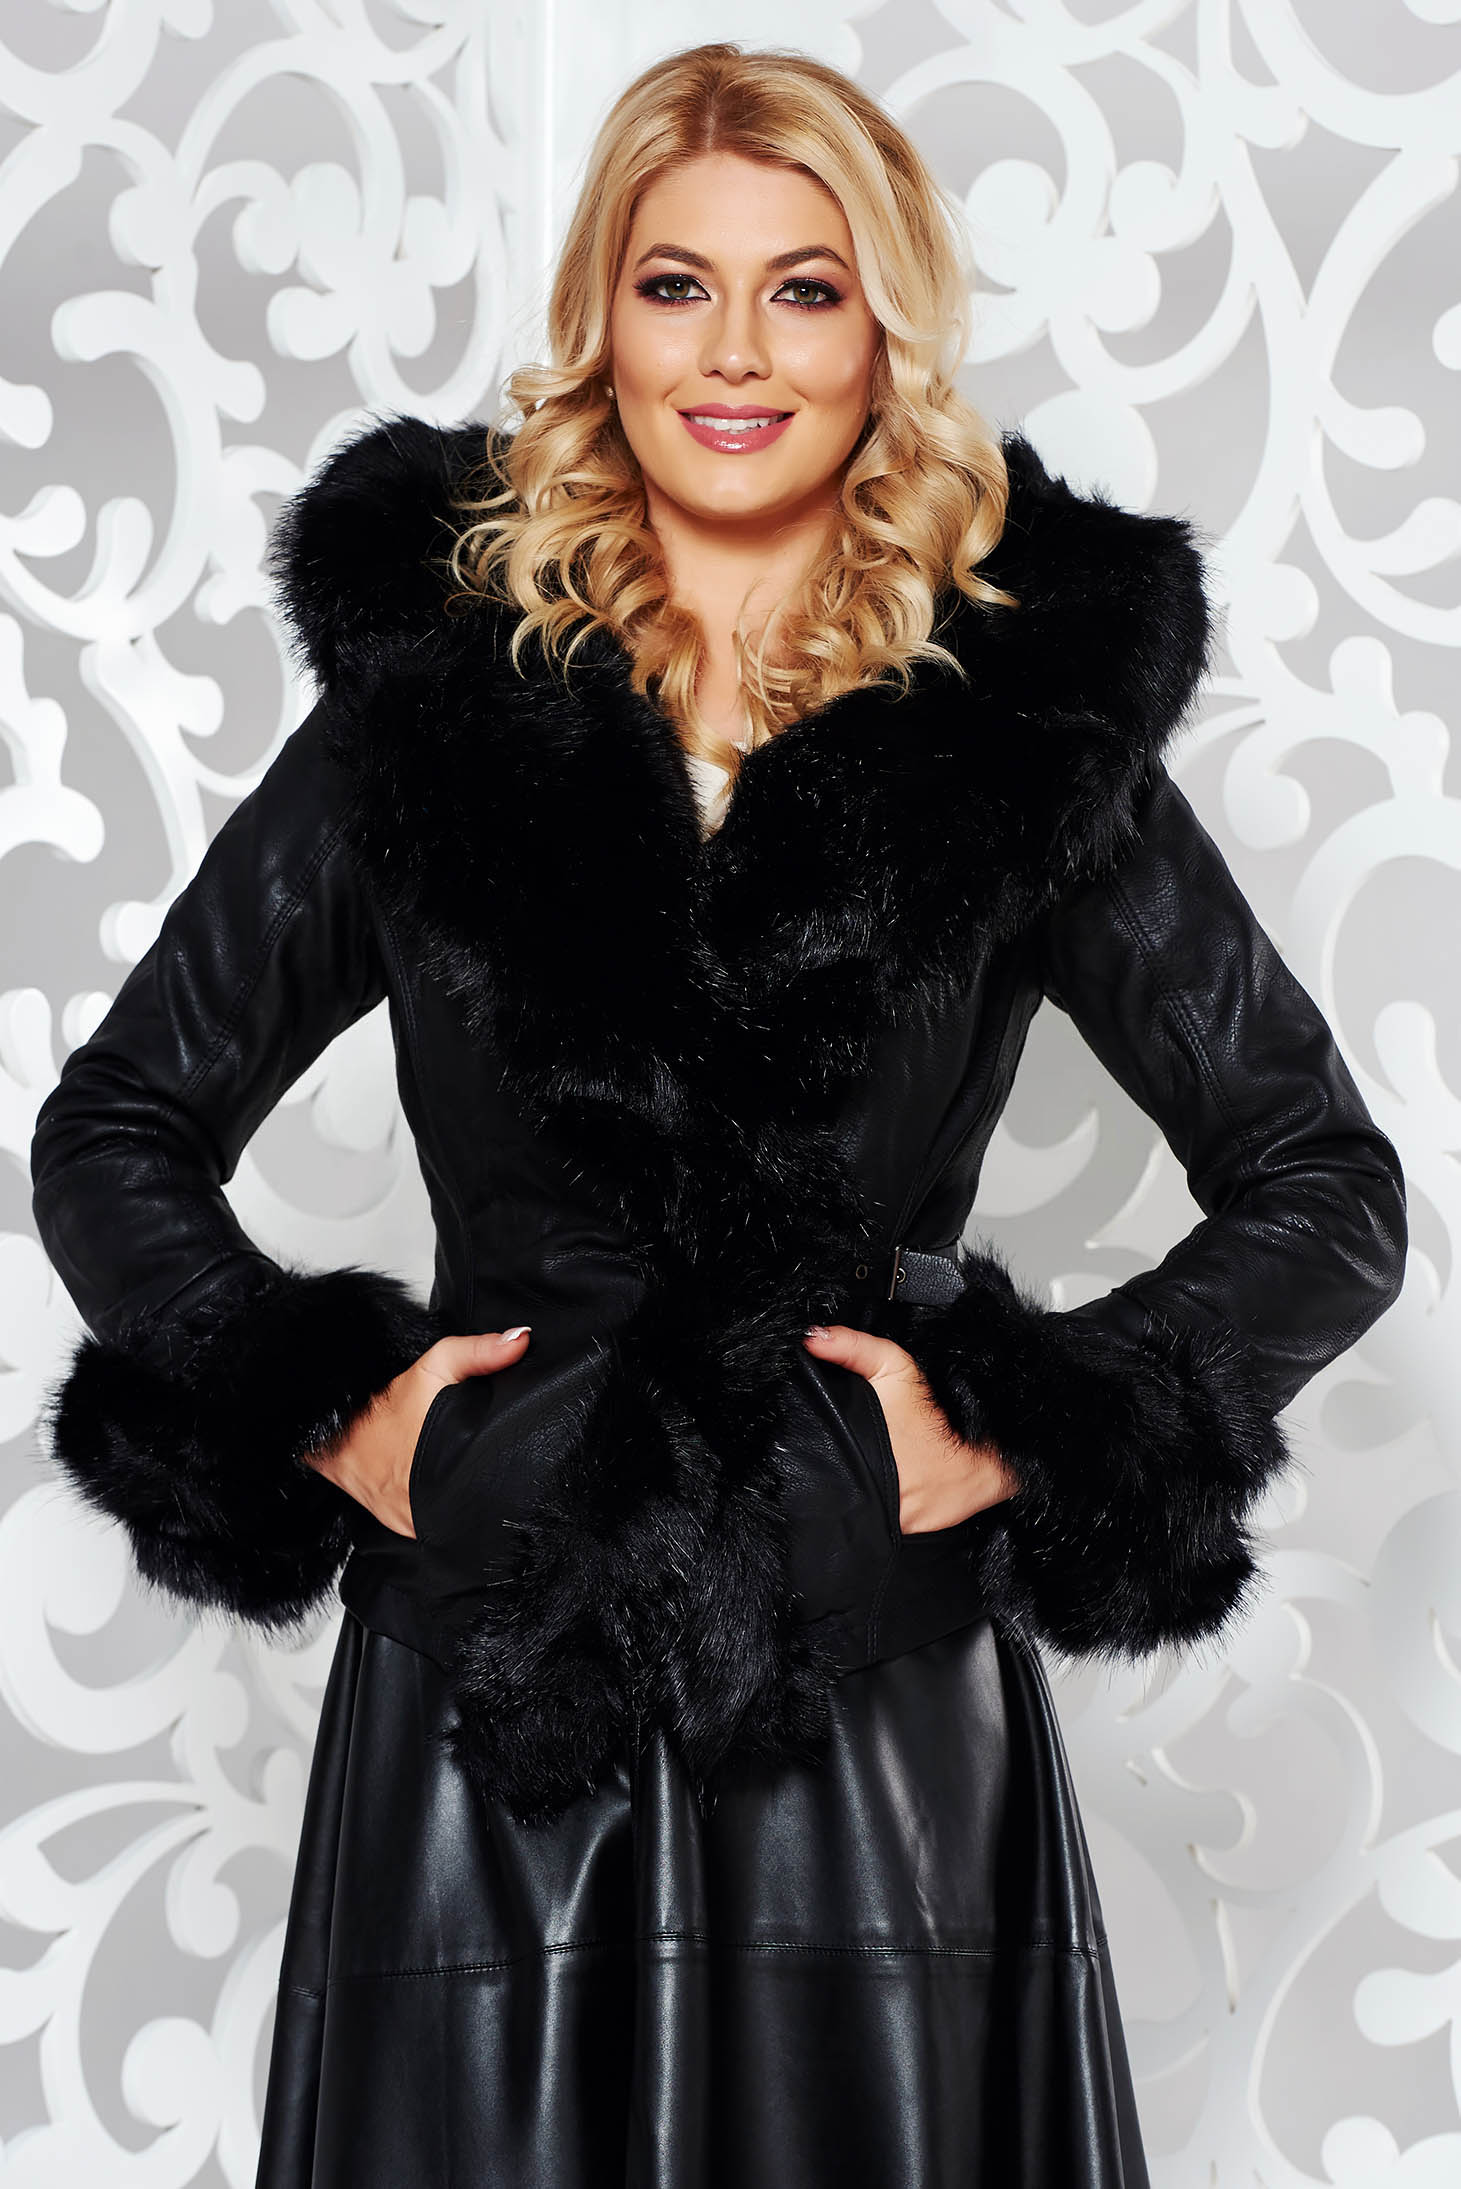 Short cut arched cut jacket from ecological leather black with faux fur lining